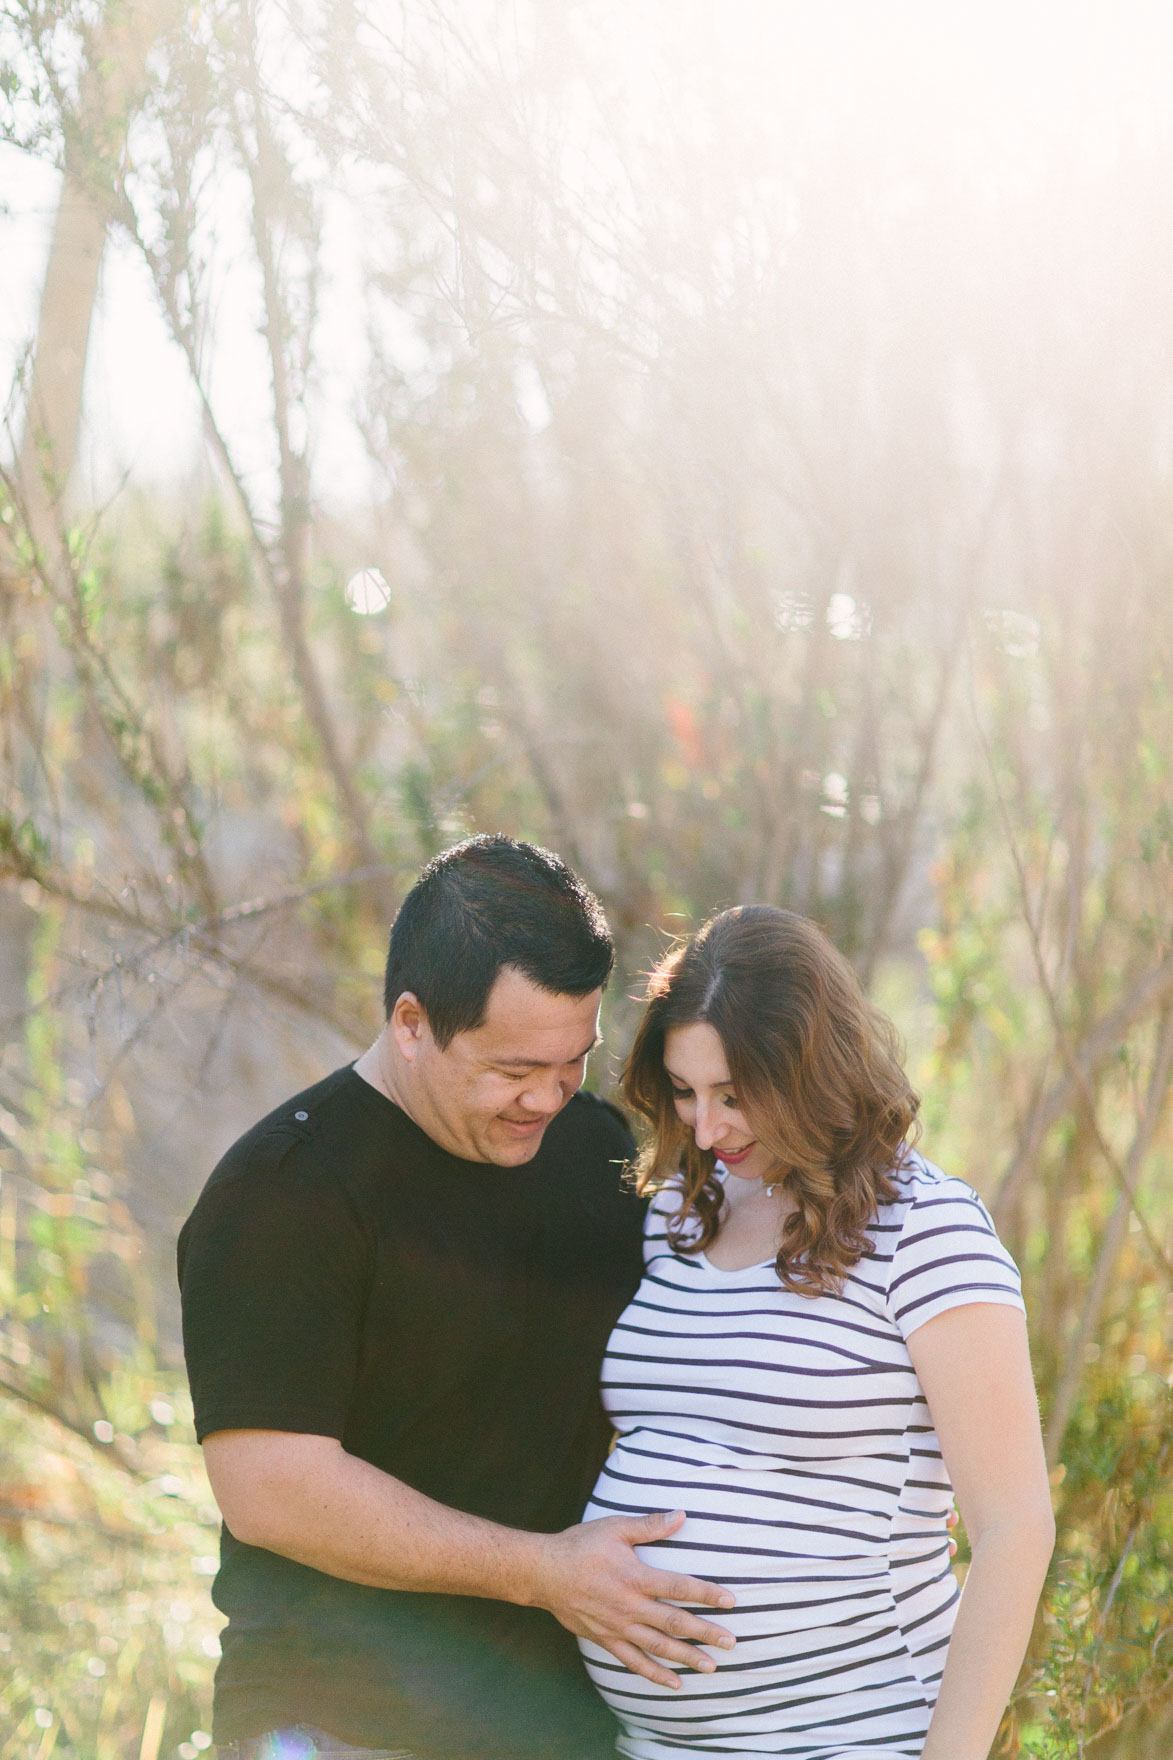 Tender Rustic Baby Bump Wander – Photo by Let's Frolic Together